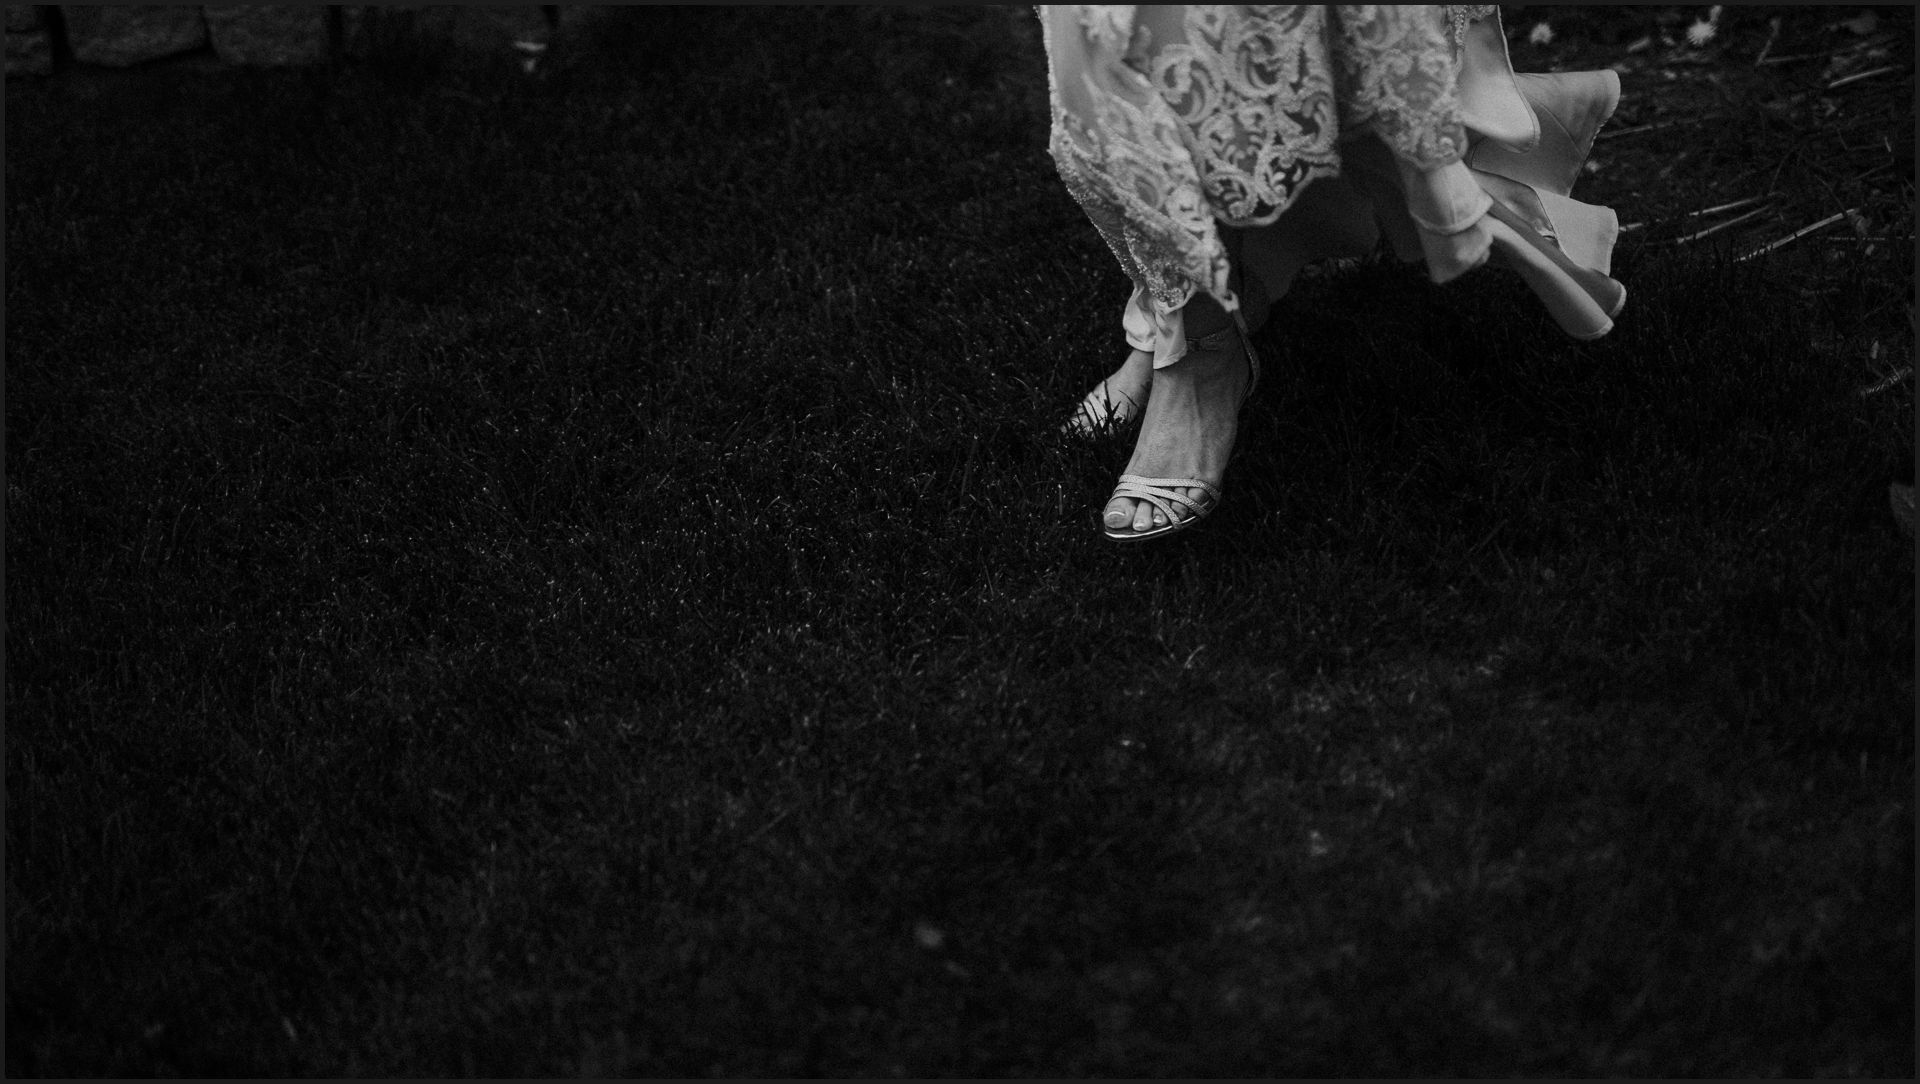 black and white, wedding dress, wedding details, feet, shoes, bride, bridal shoes